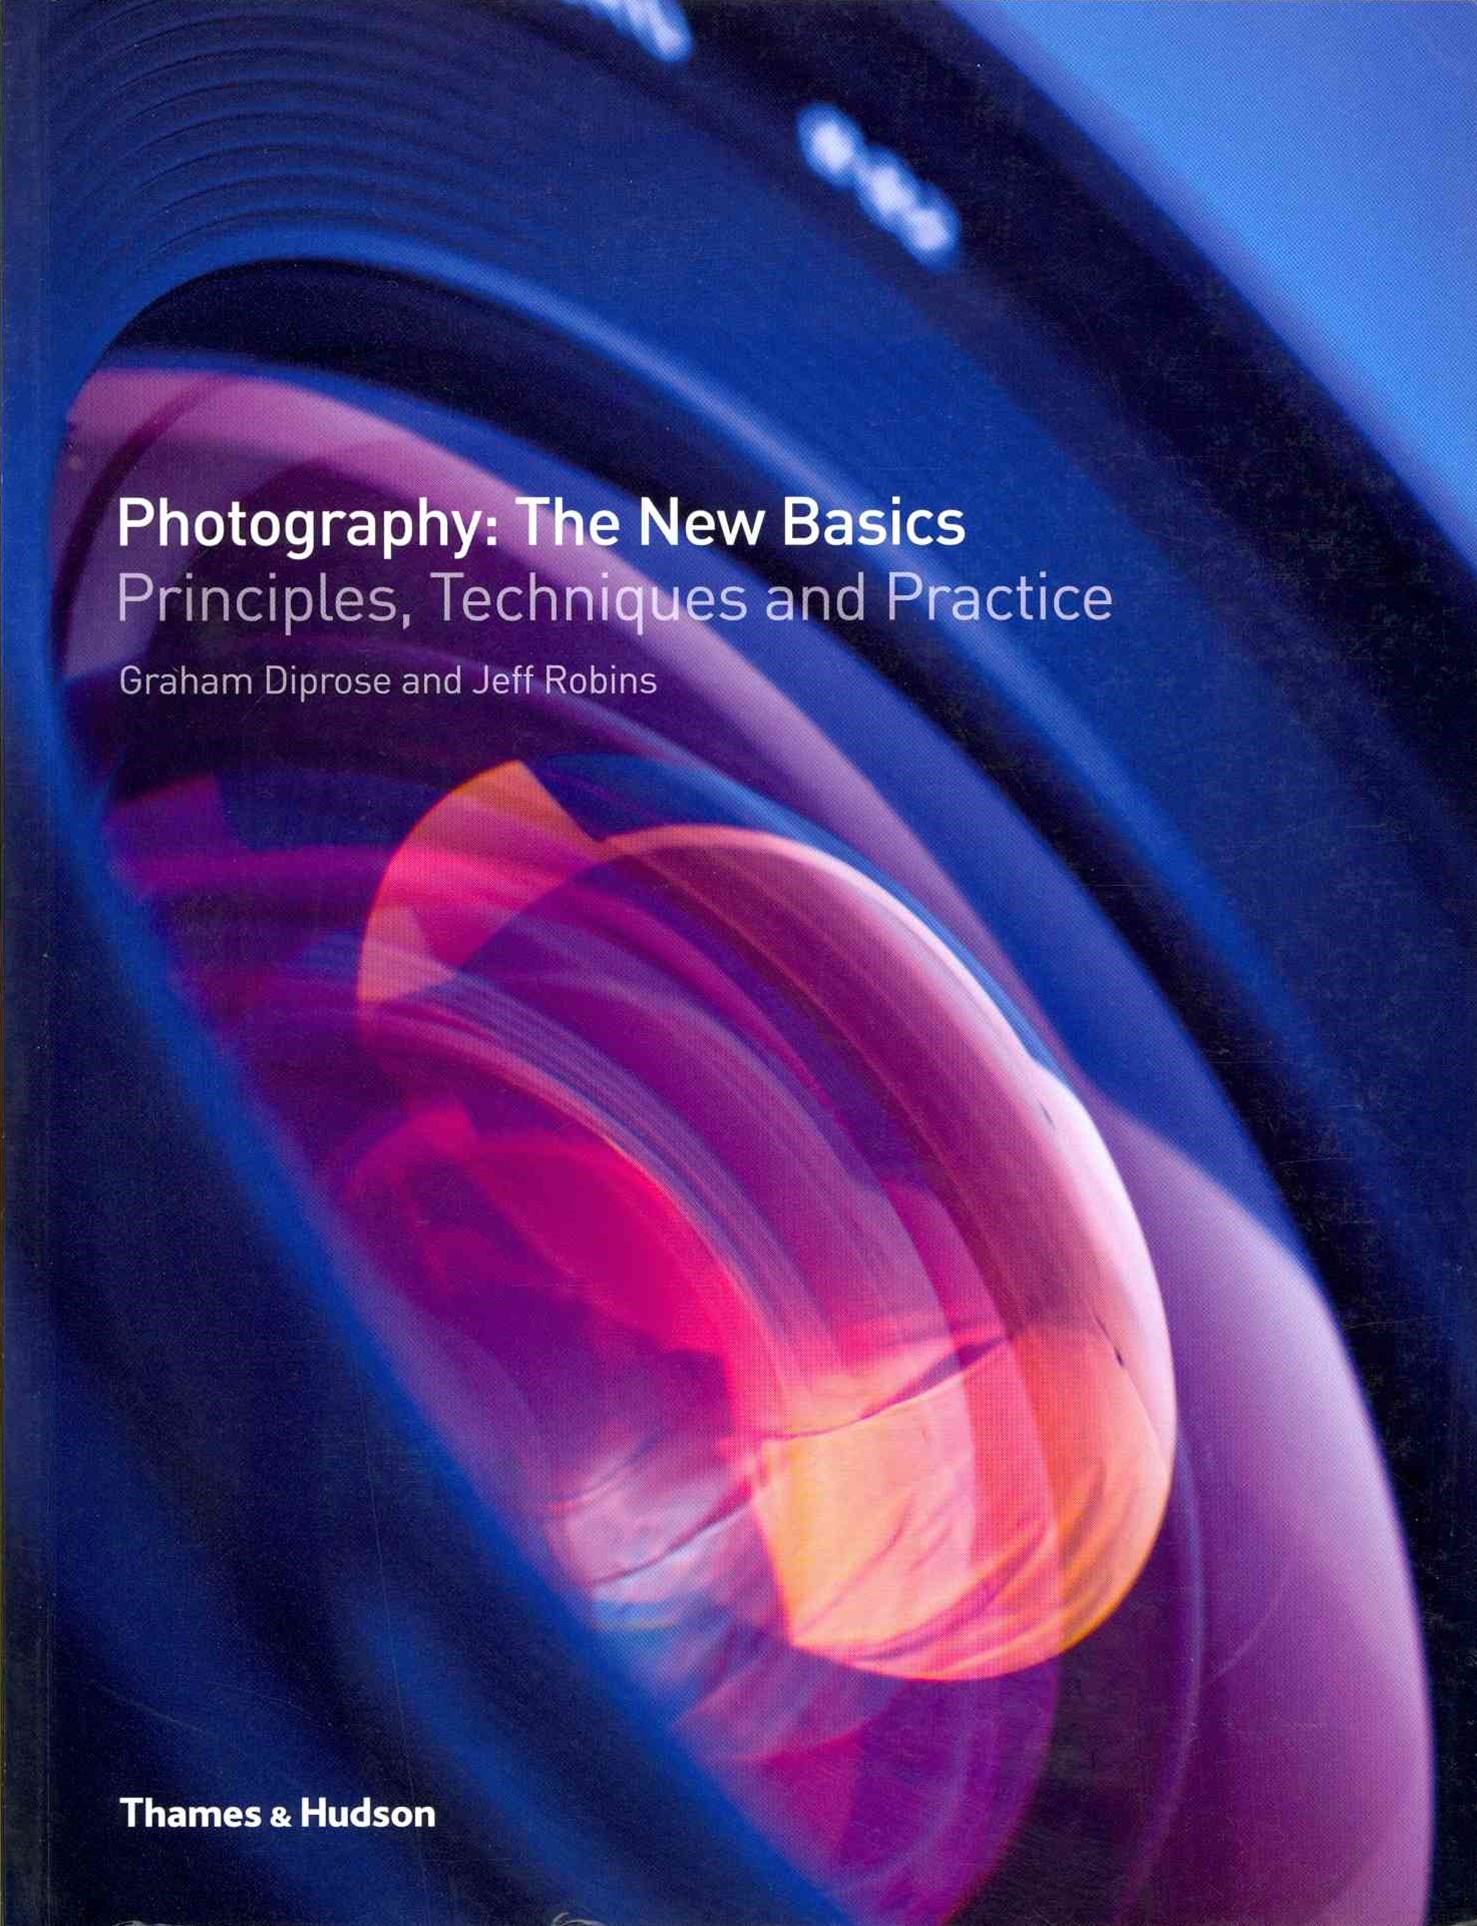 Photography: The New Basics